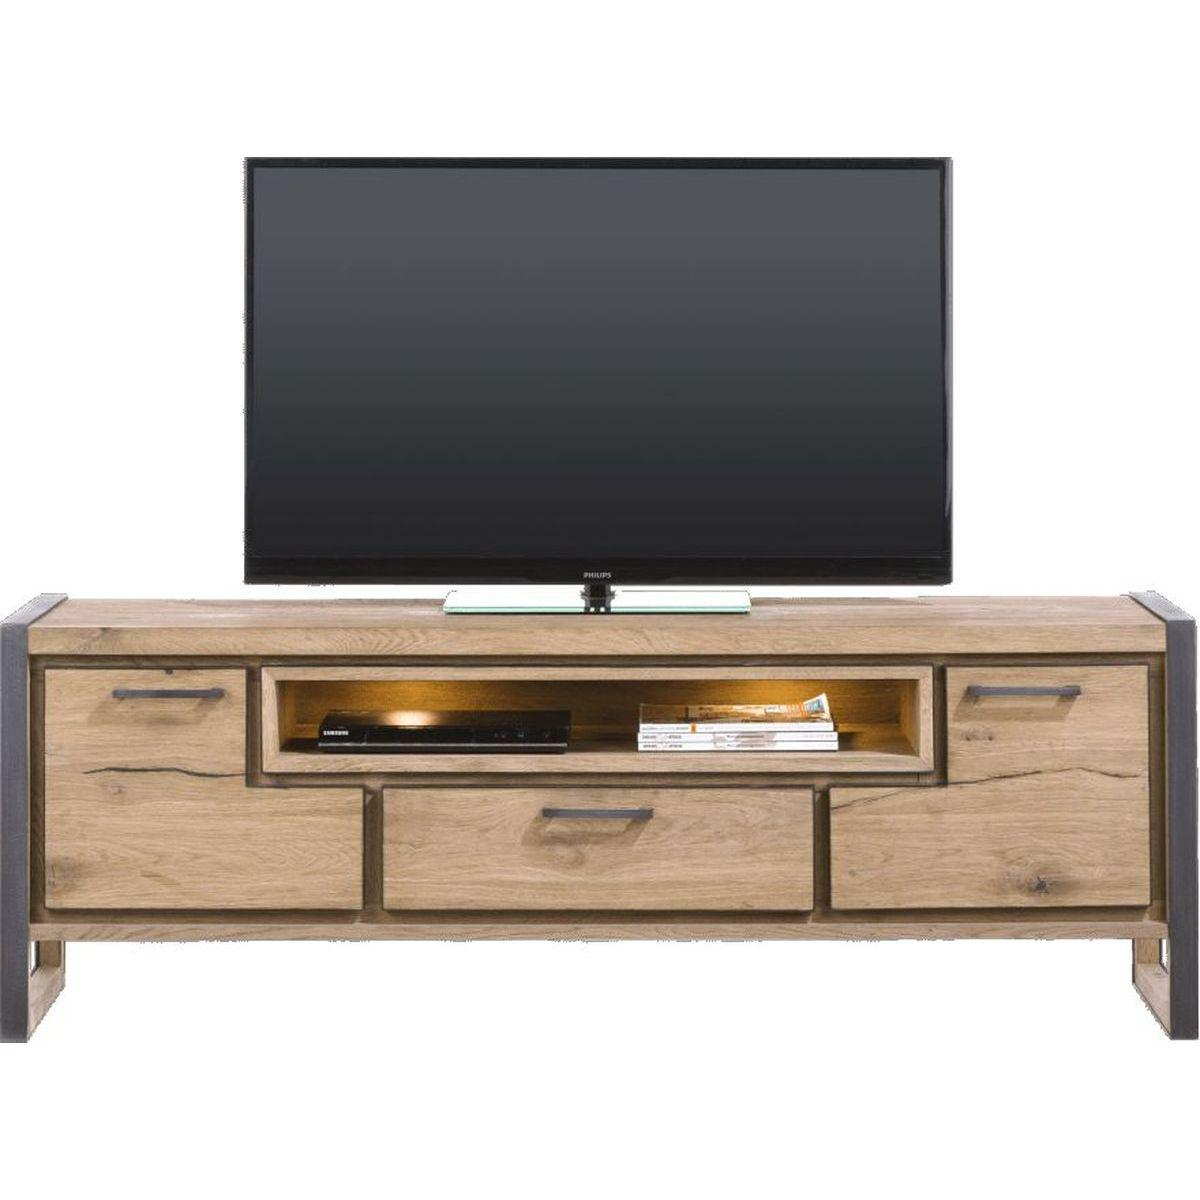 Meuble TV METALO HetH 170cm